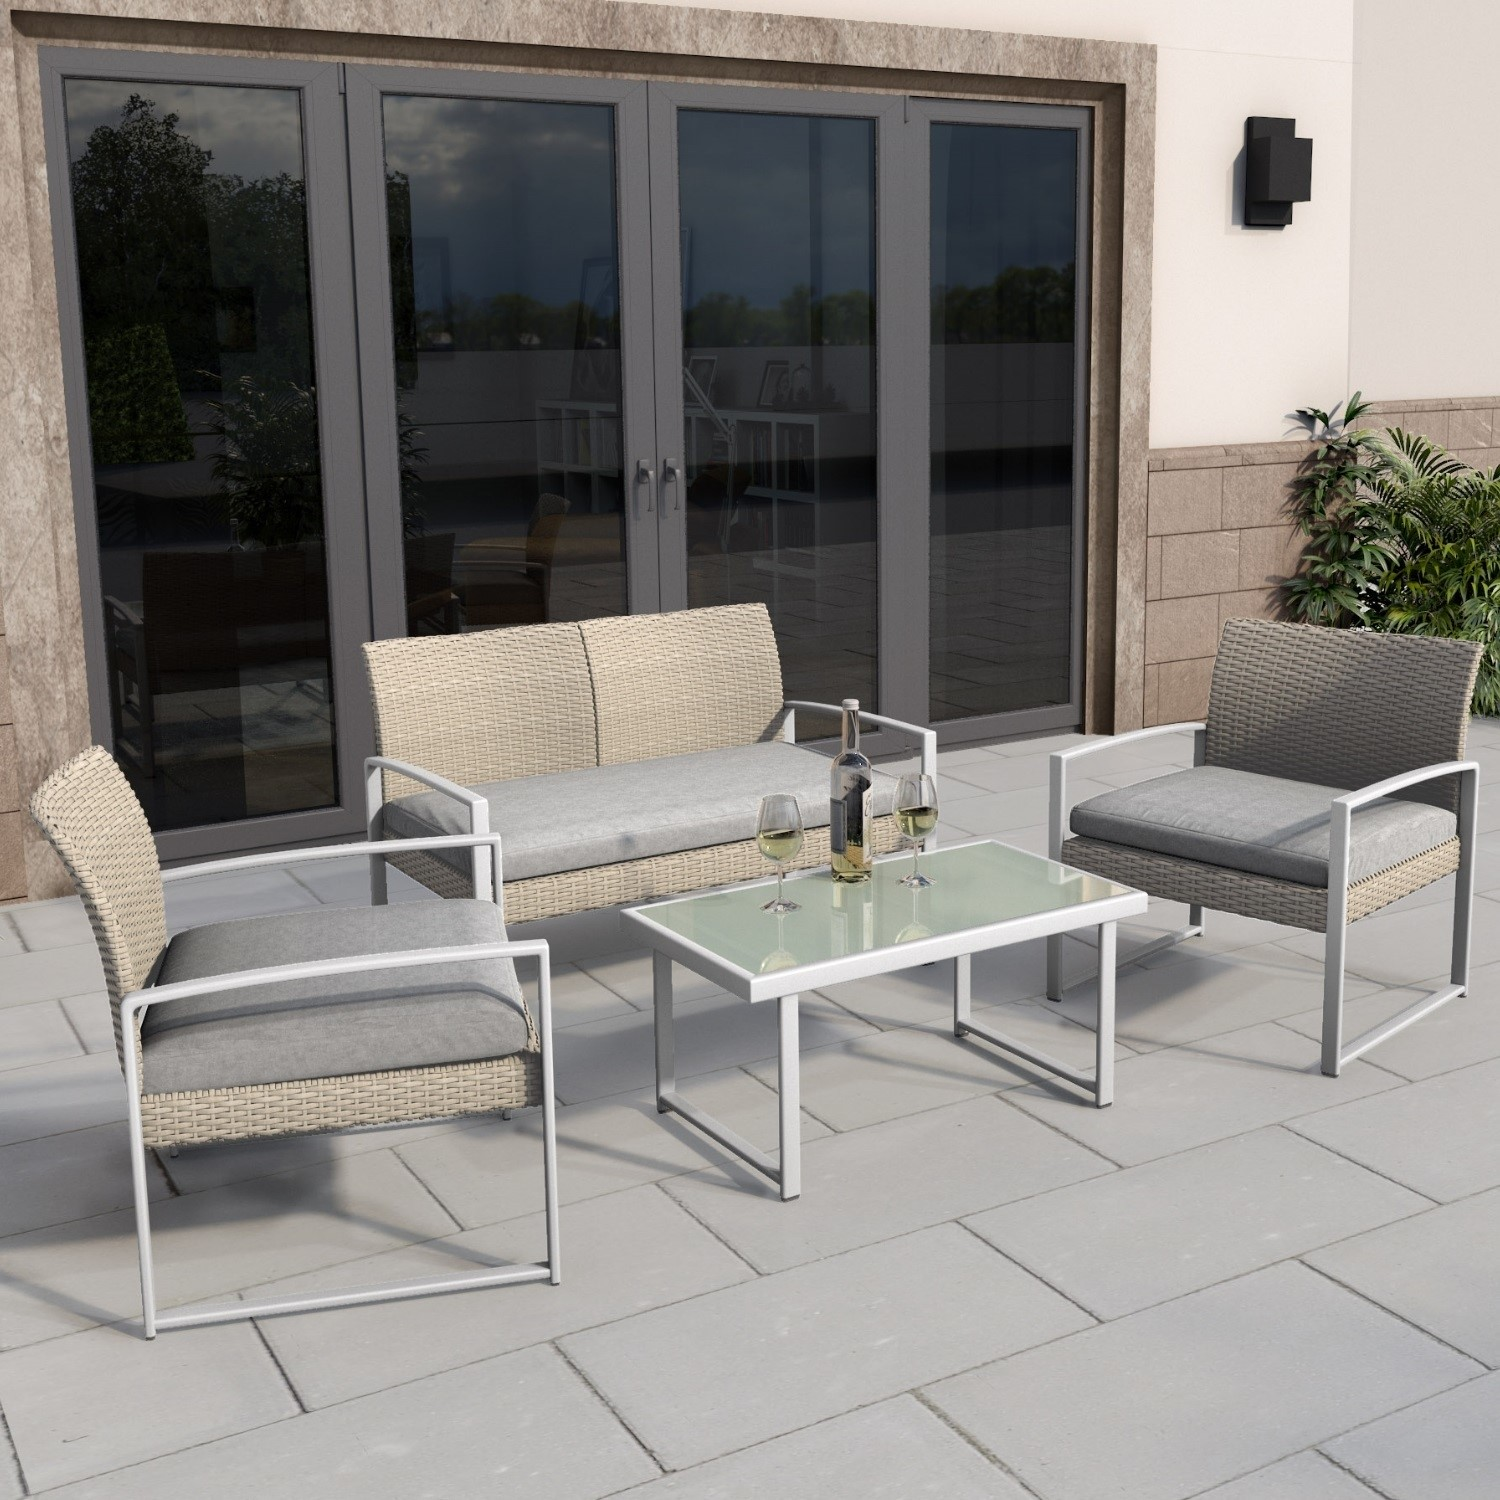 4 piece rattan patio outdoor furniture set with grey cushions table